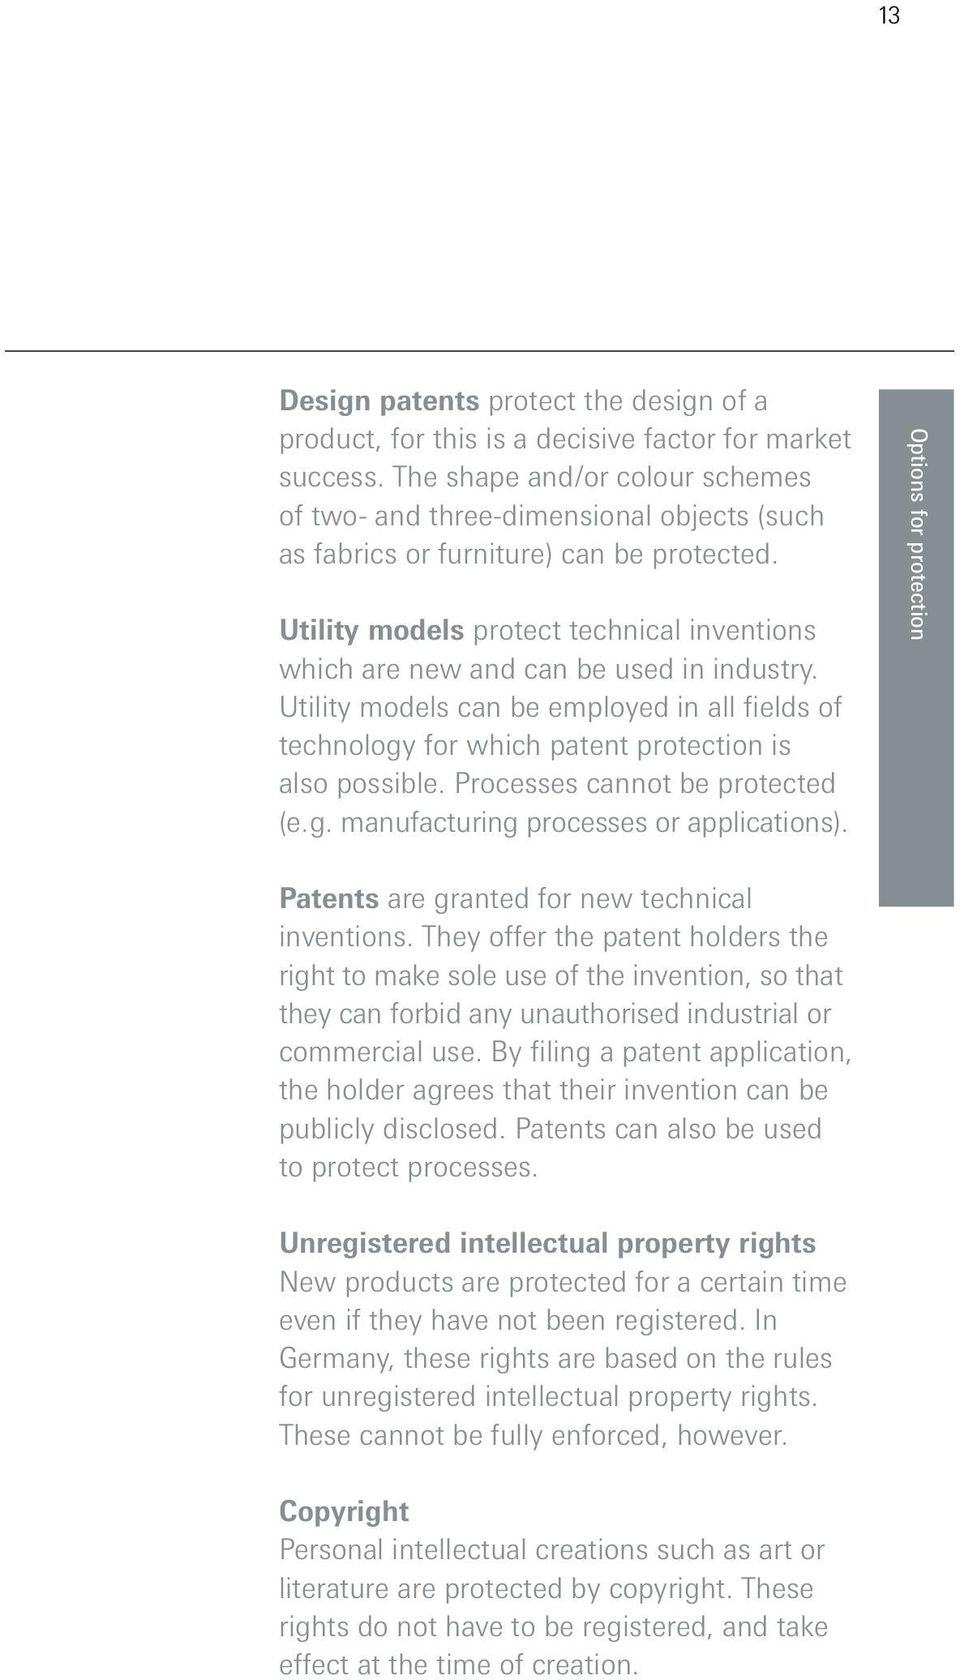 Utility models protect technical inventions which are new and can be used in industry. Utility models can be employed in all fields of technology for which patent protection is also possible.